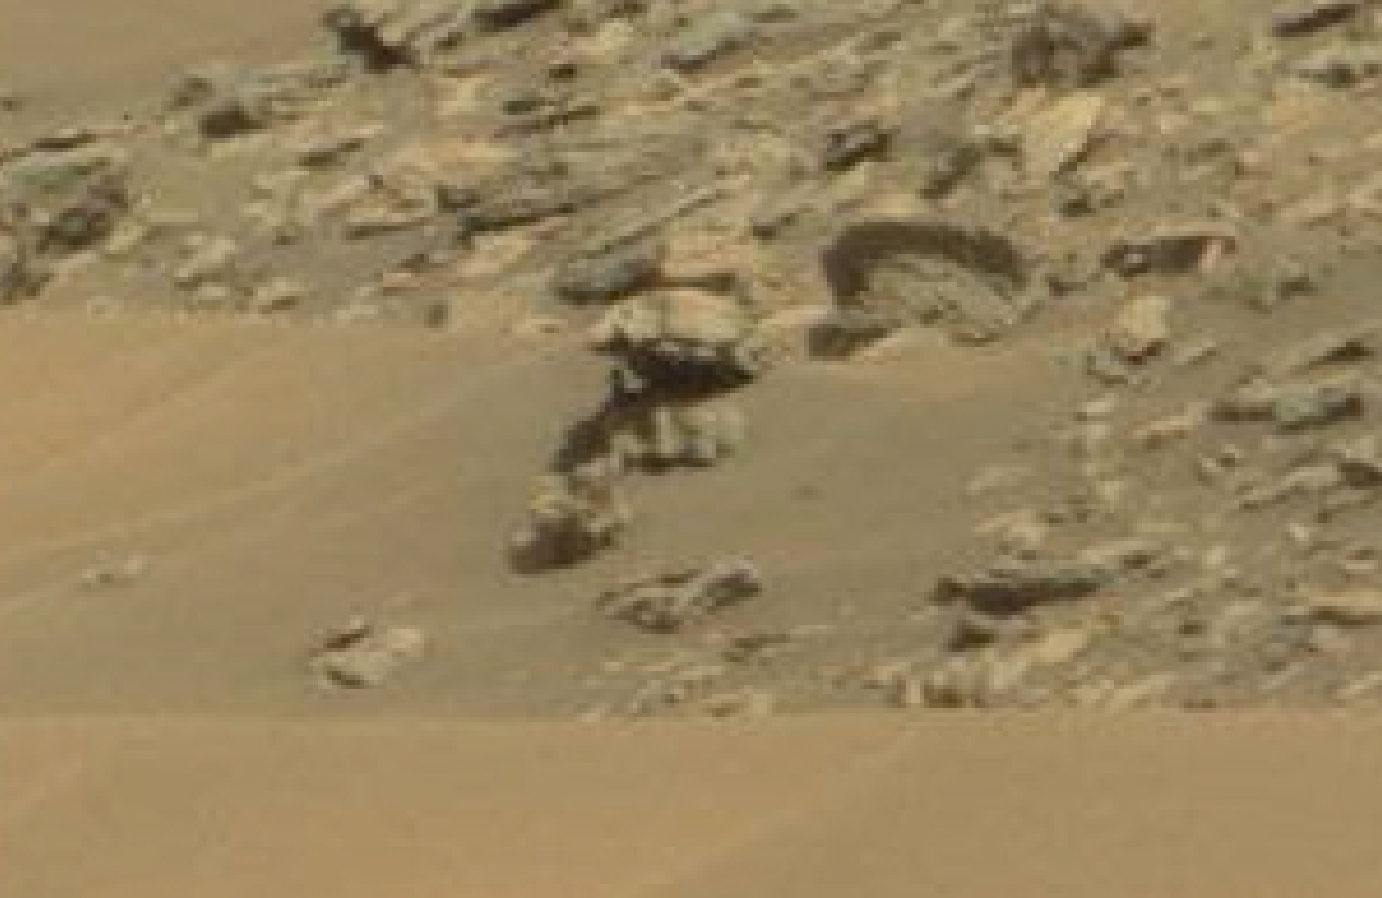 mars sol 1434 anomaly artifacts 16 was life on mars